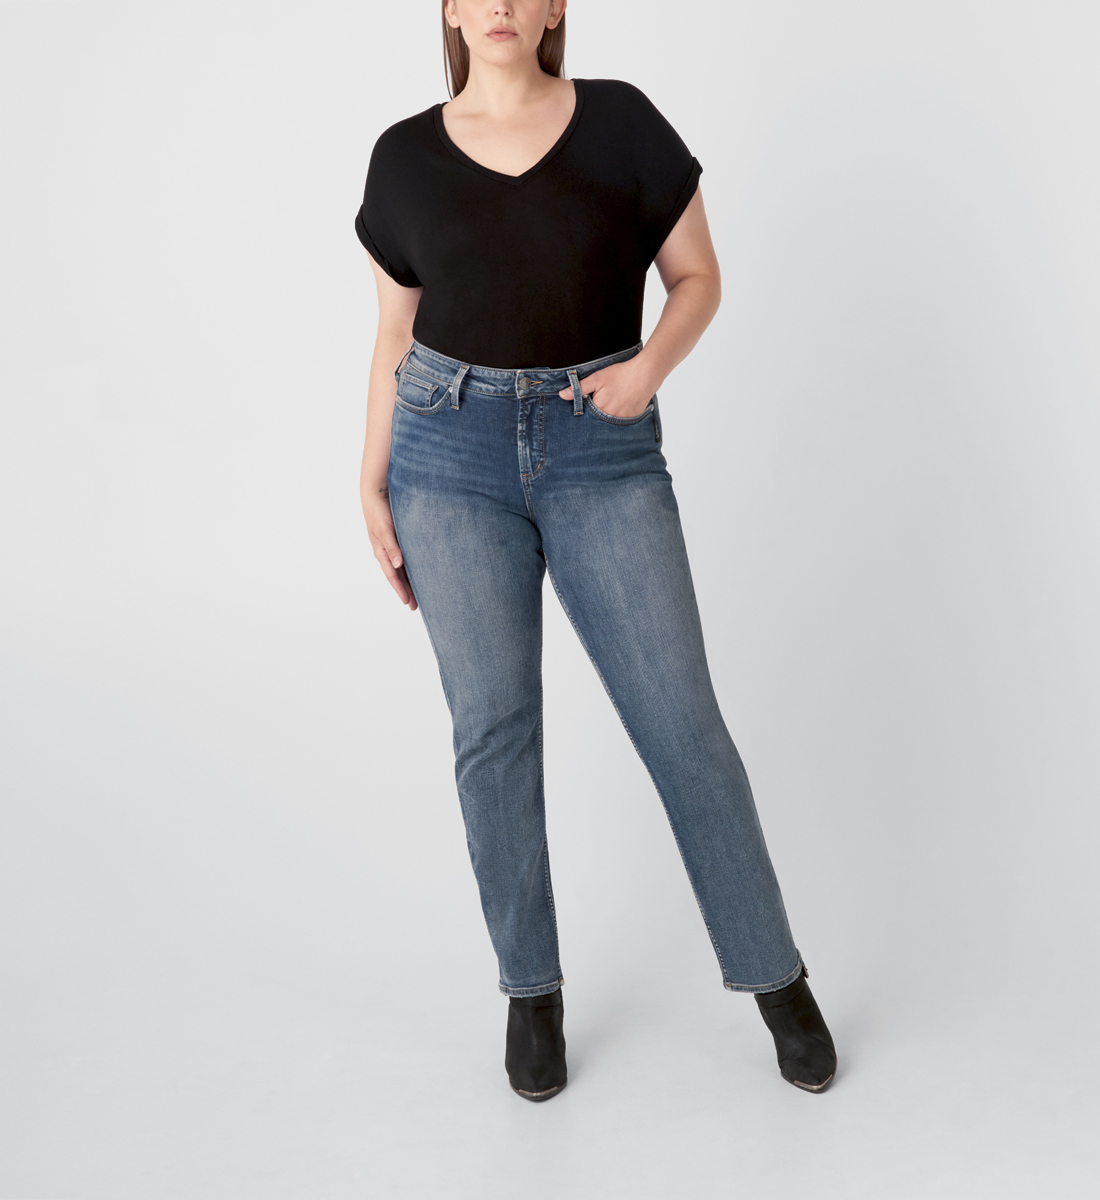 Silver Jeans Avery High Rise Straight Leg Jeans Plus Size - Eco-Friendly Wash